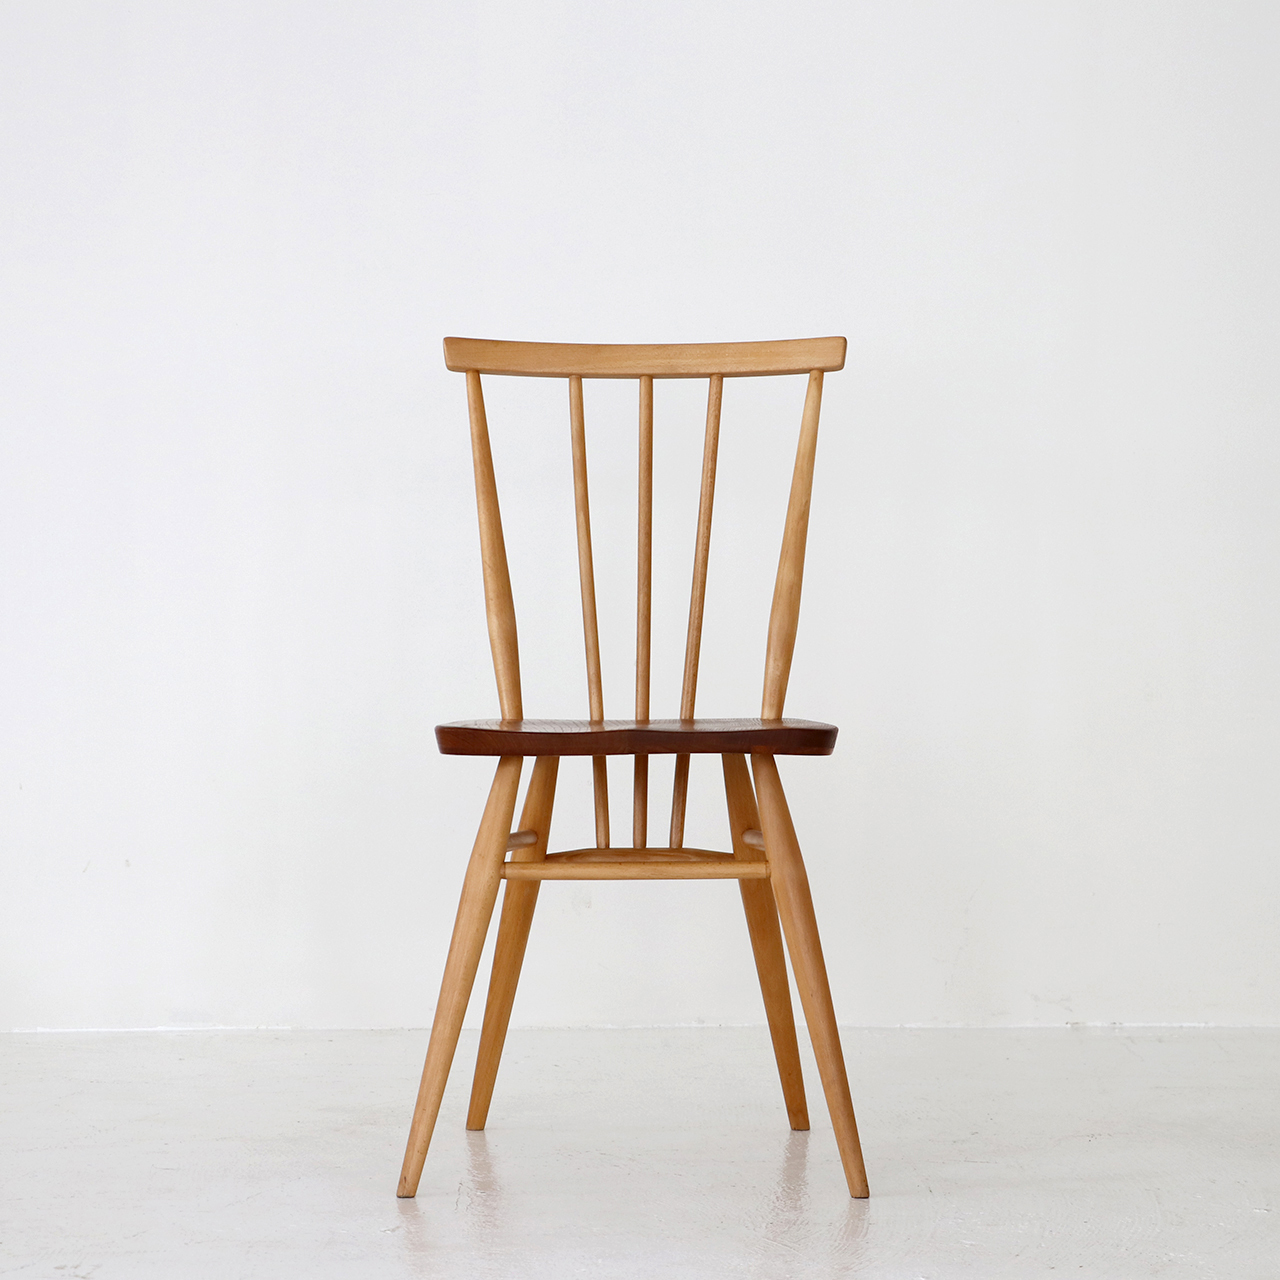 Stickback chair / Ercol